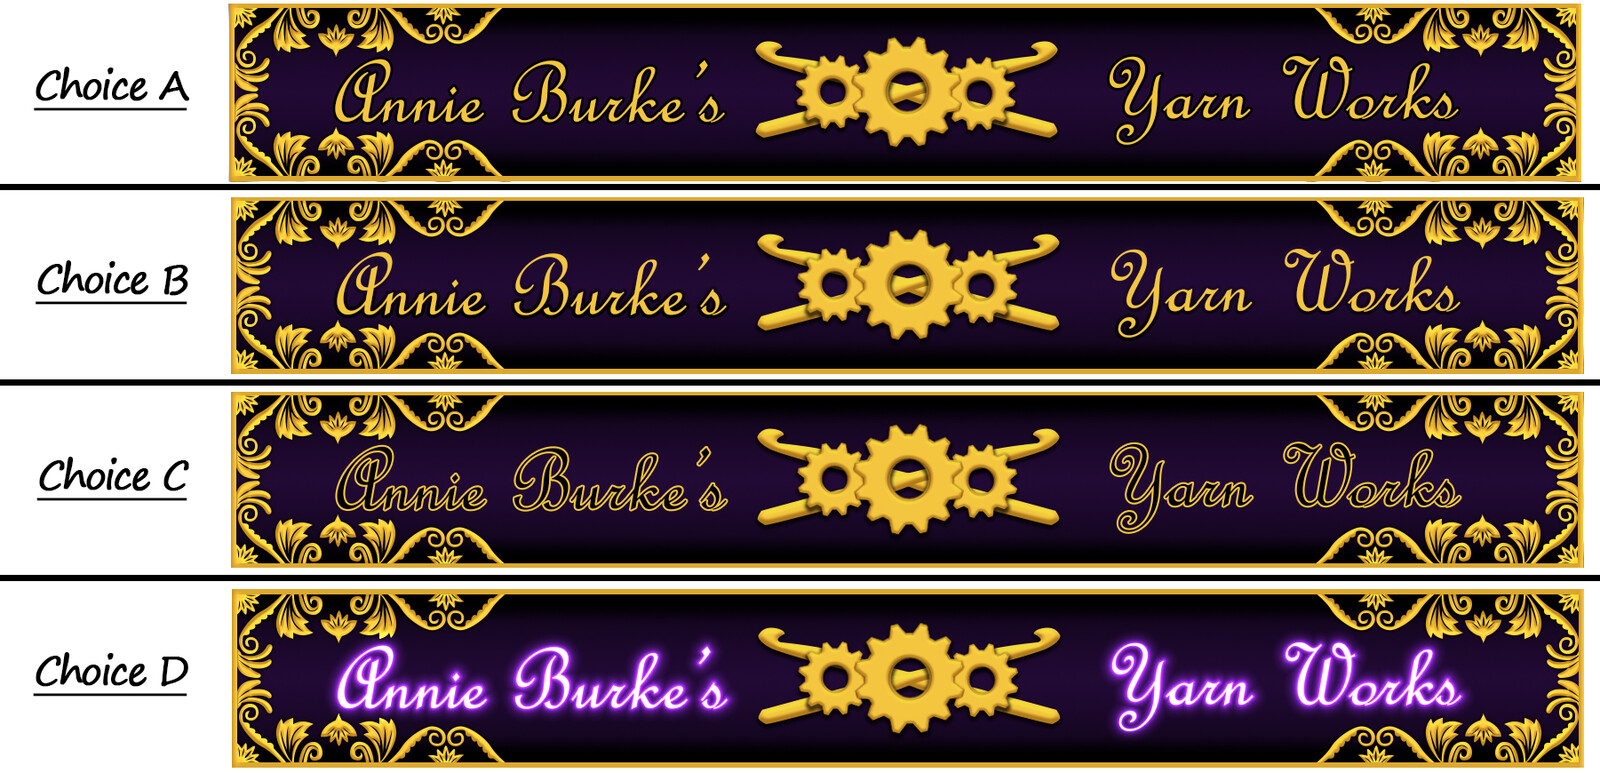 Fourth batch of receipt banner concepts